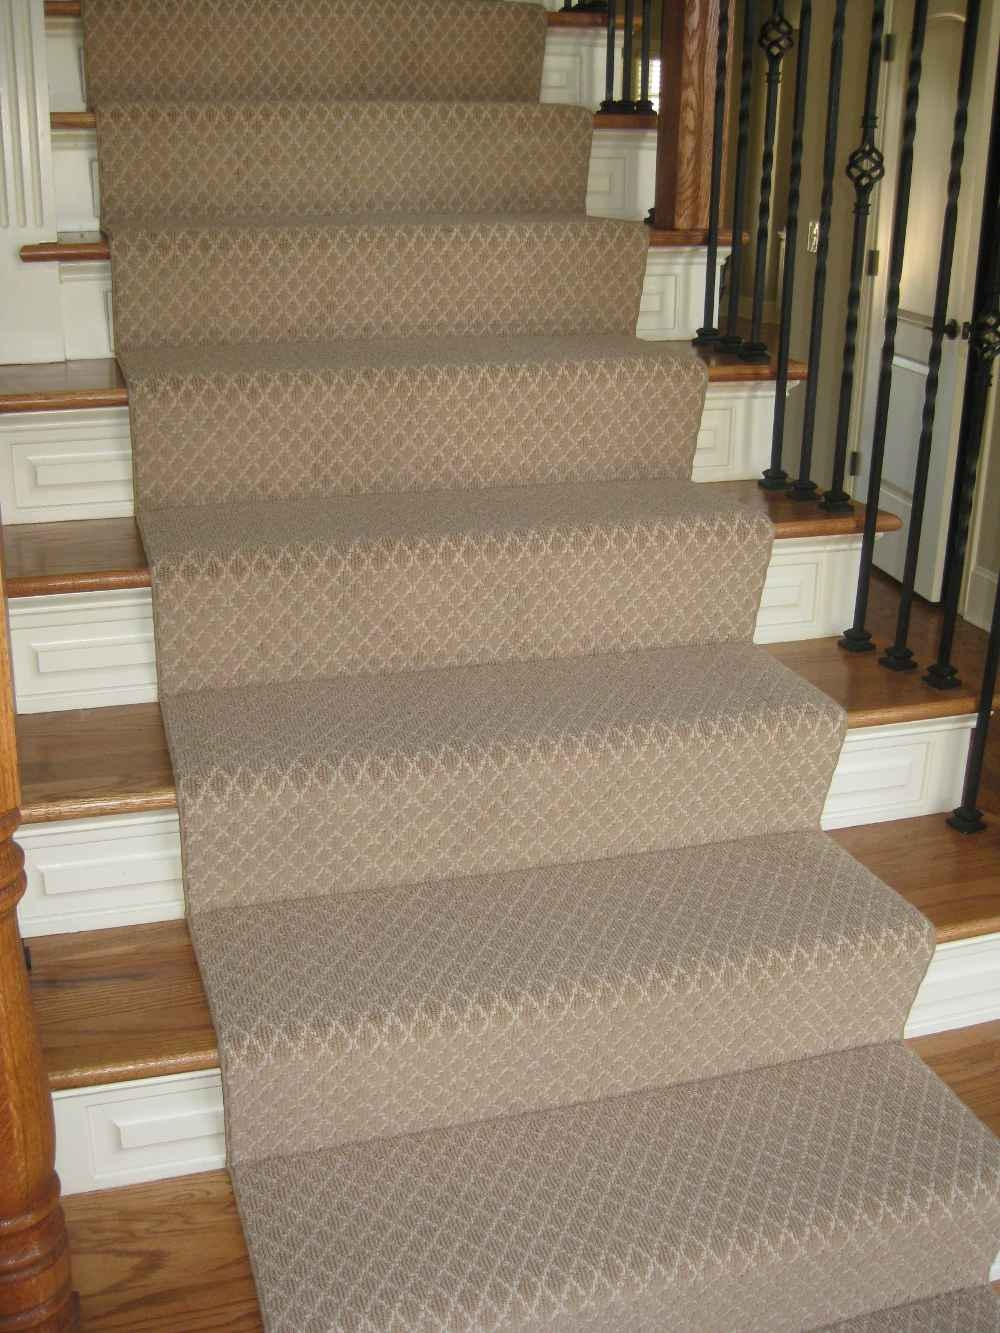 Keep Plastic Carpet Runners For Stairs Interior Home Design Pertaining To Plastic Hallway Runners (#14 of 20)